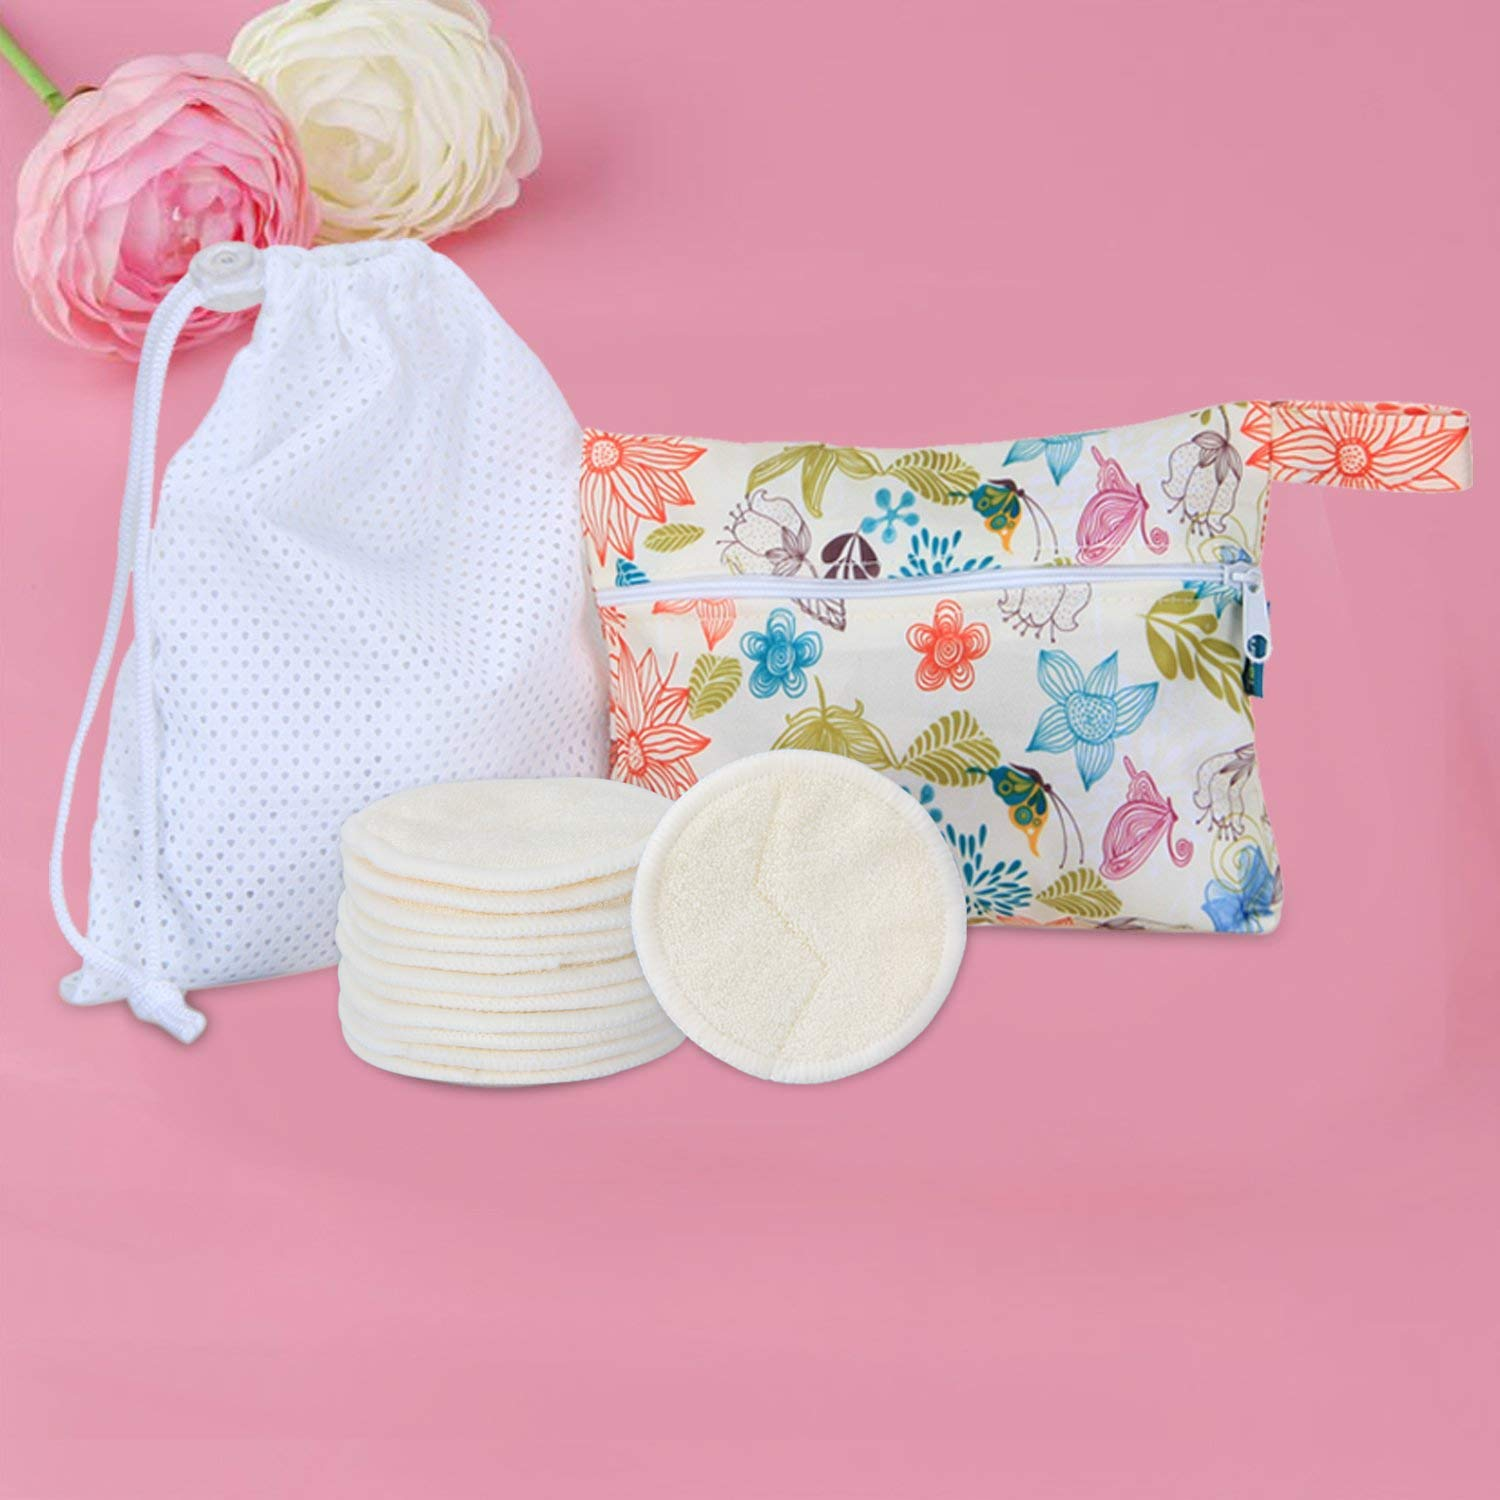 Laundry Bag+Storage Bag Teamoy 12pcs Reusable Make up Remover Pads with 2 EXTRA Bags